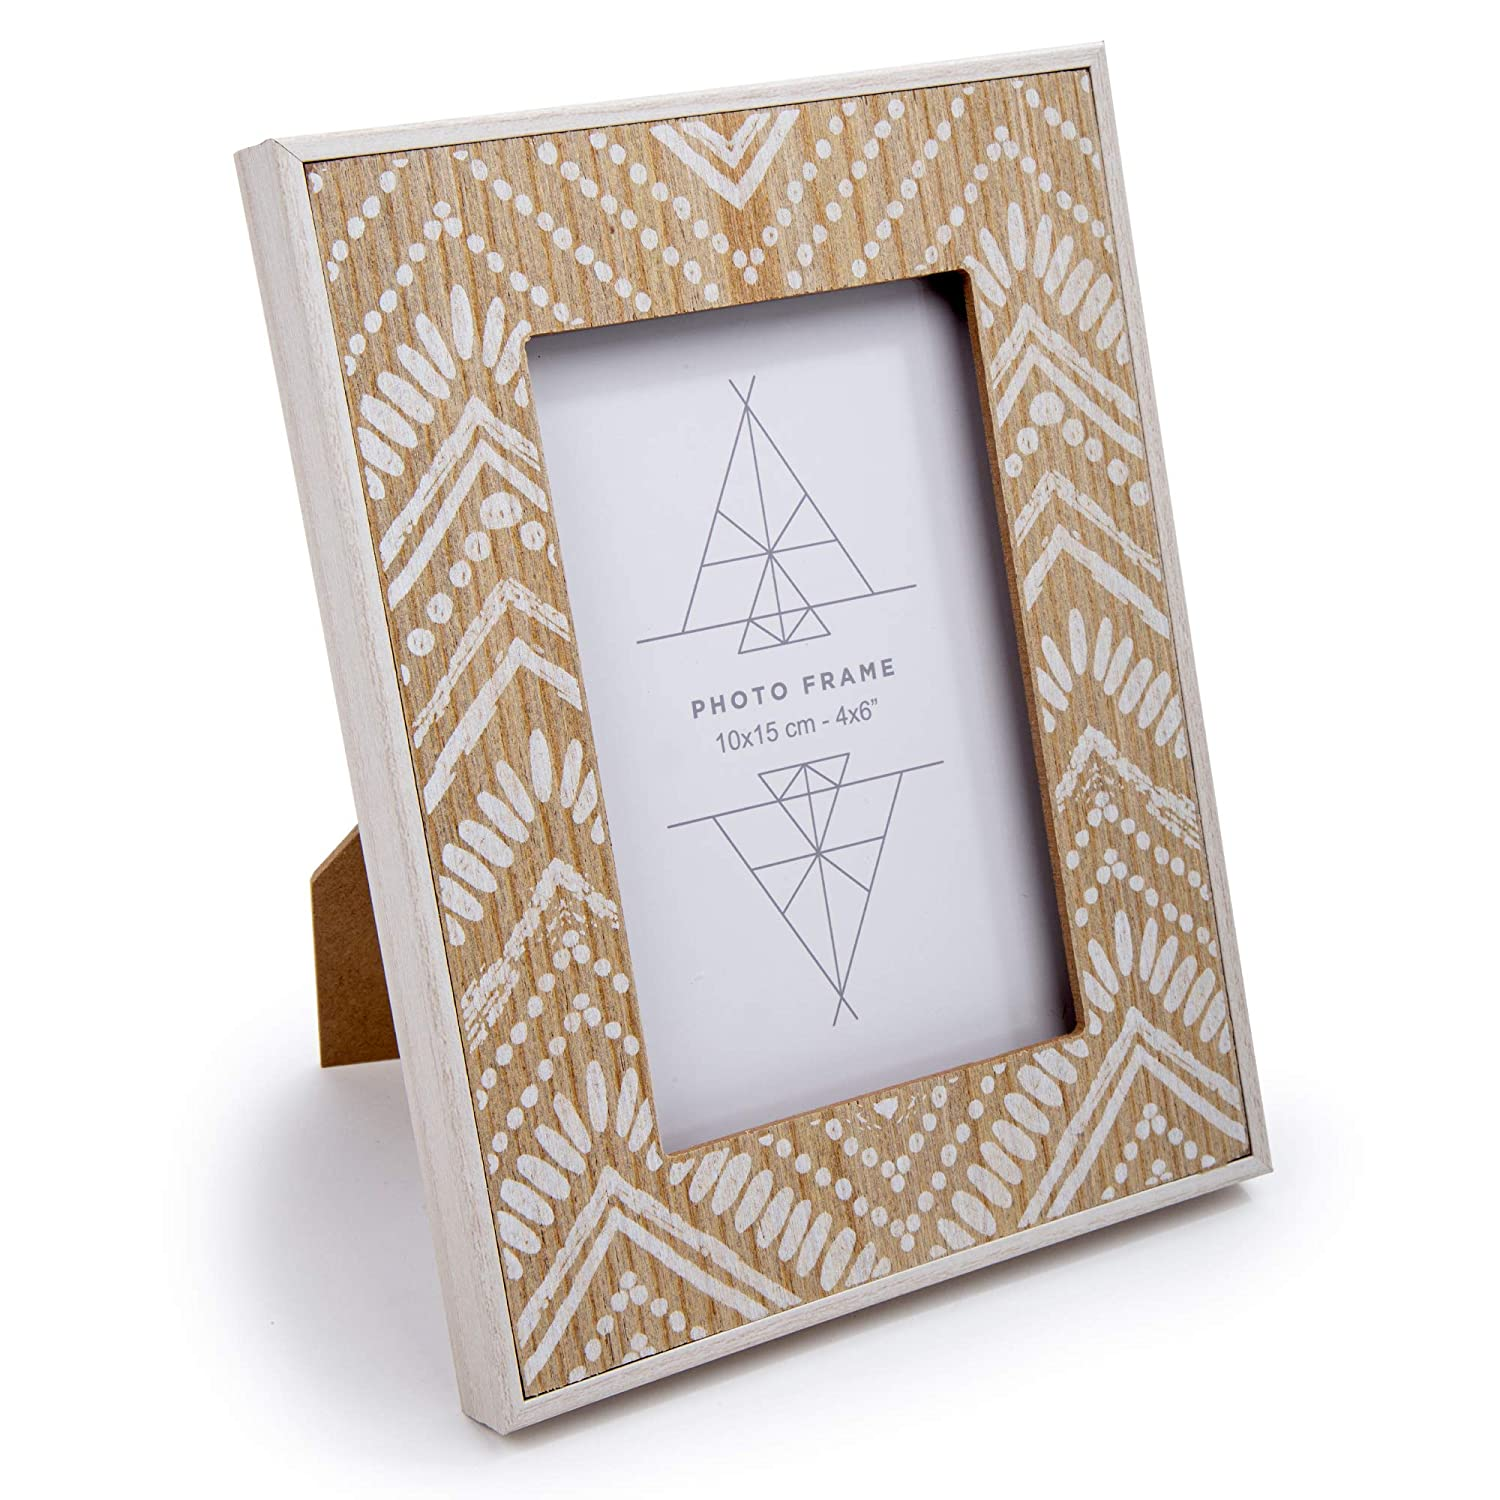 Ivory Truu Design 4 x 6 inches Boho Wooden Picture Frame